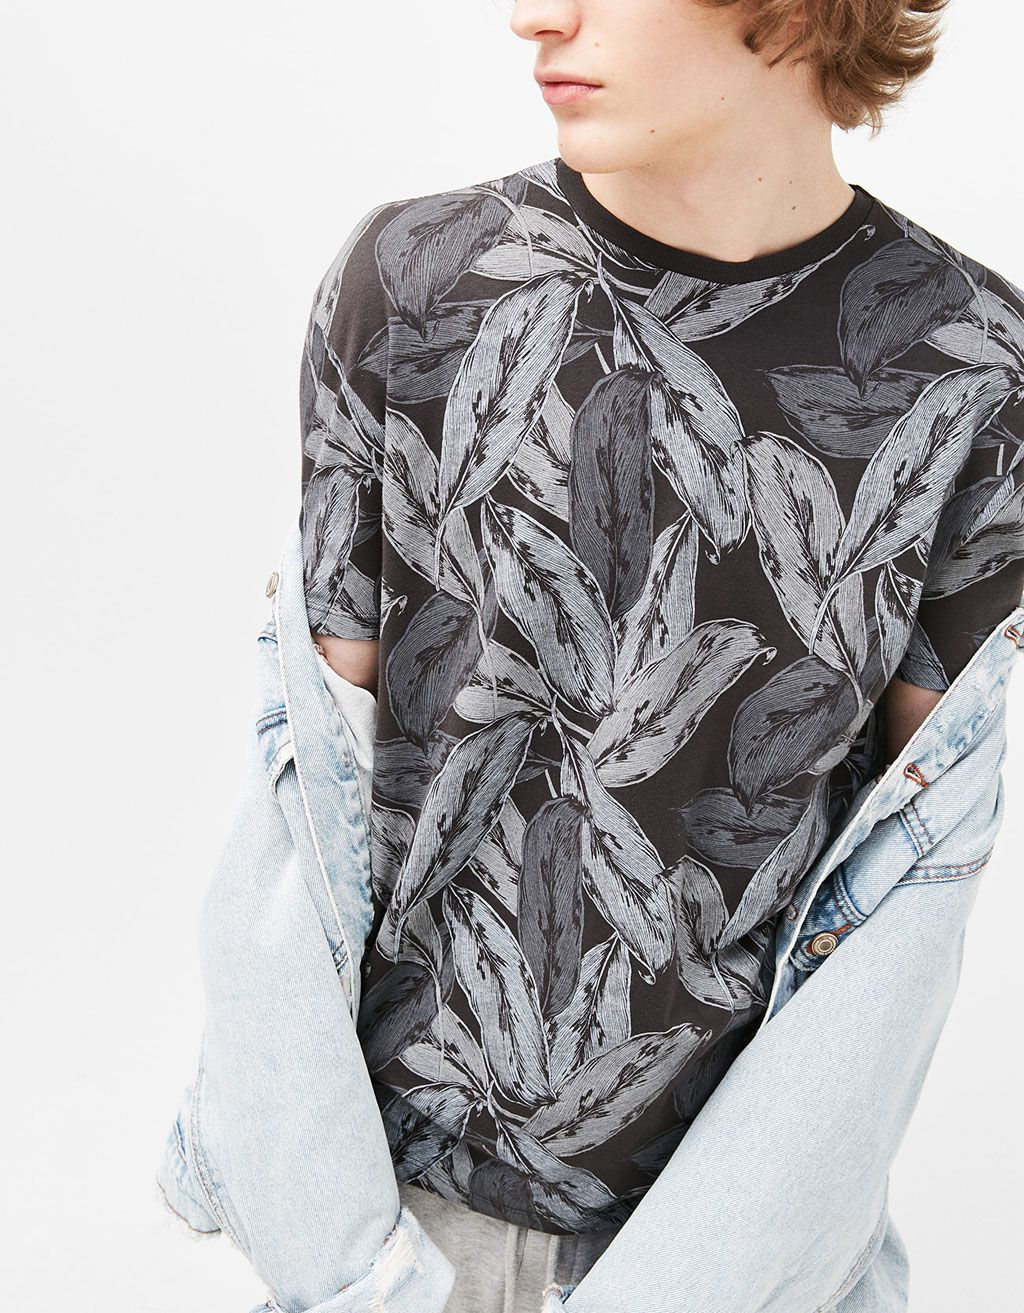 f91ed104 Tigers/leaves/camouflage T-shirt | Florals & Plants | Camouflage t ...